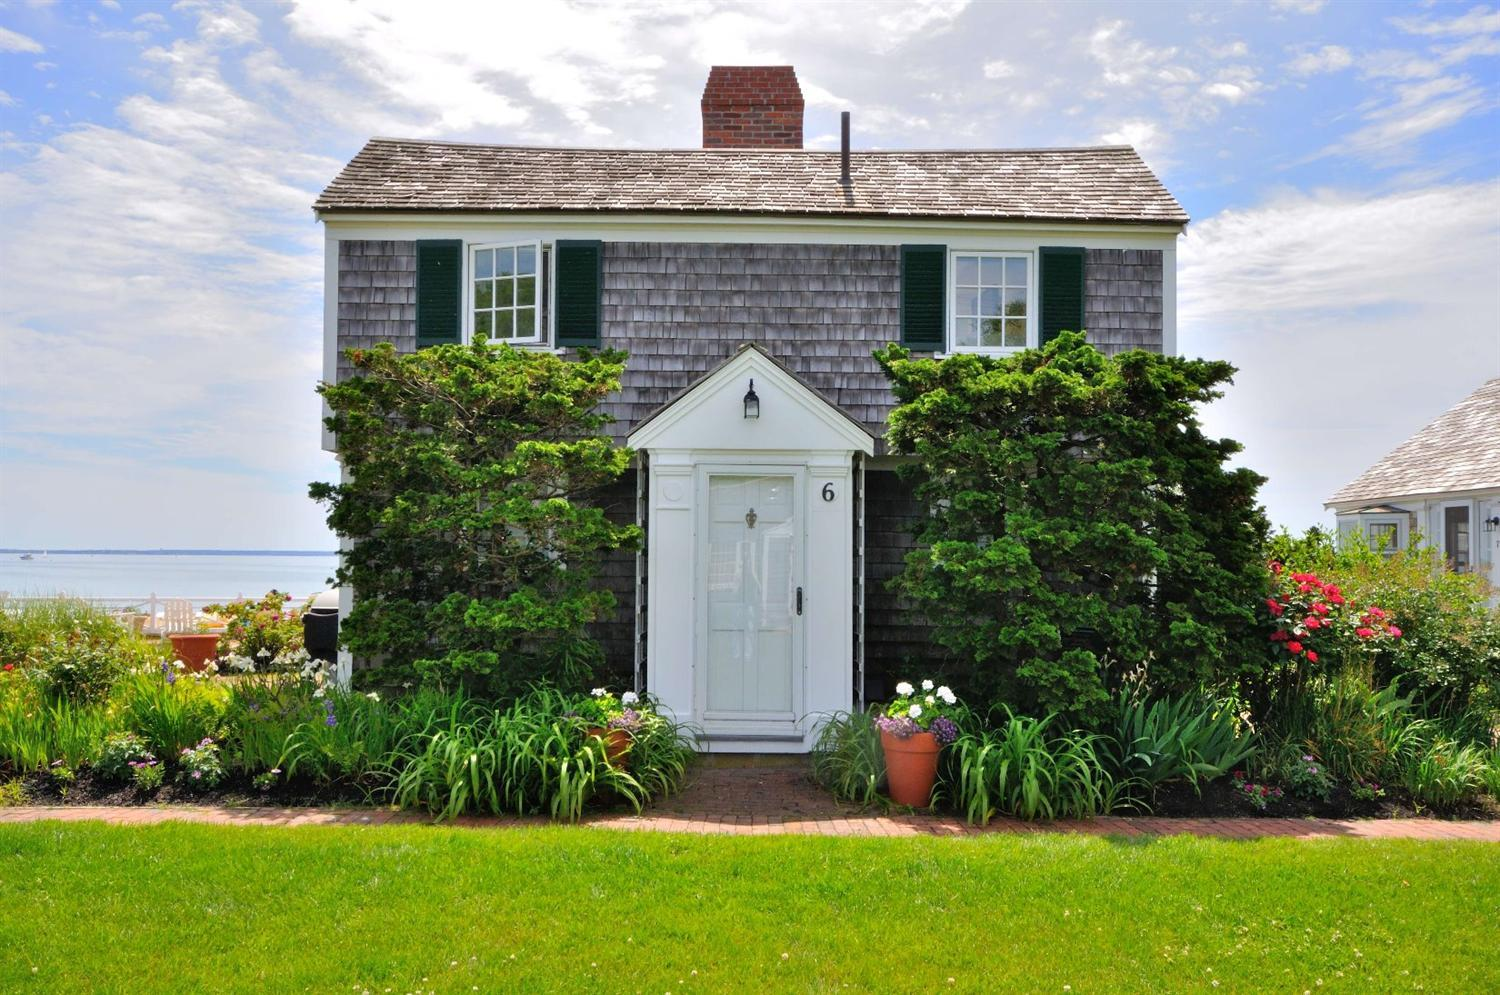 rental truro home cod cape beach private vacation village cottages in feet ma id bay provincetown